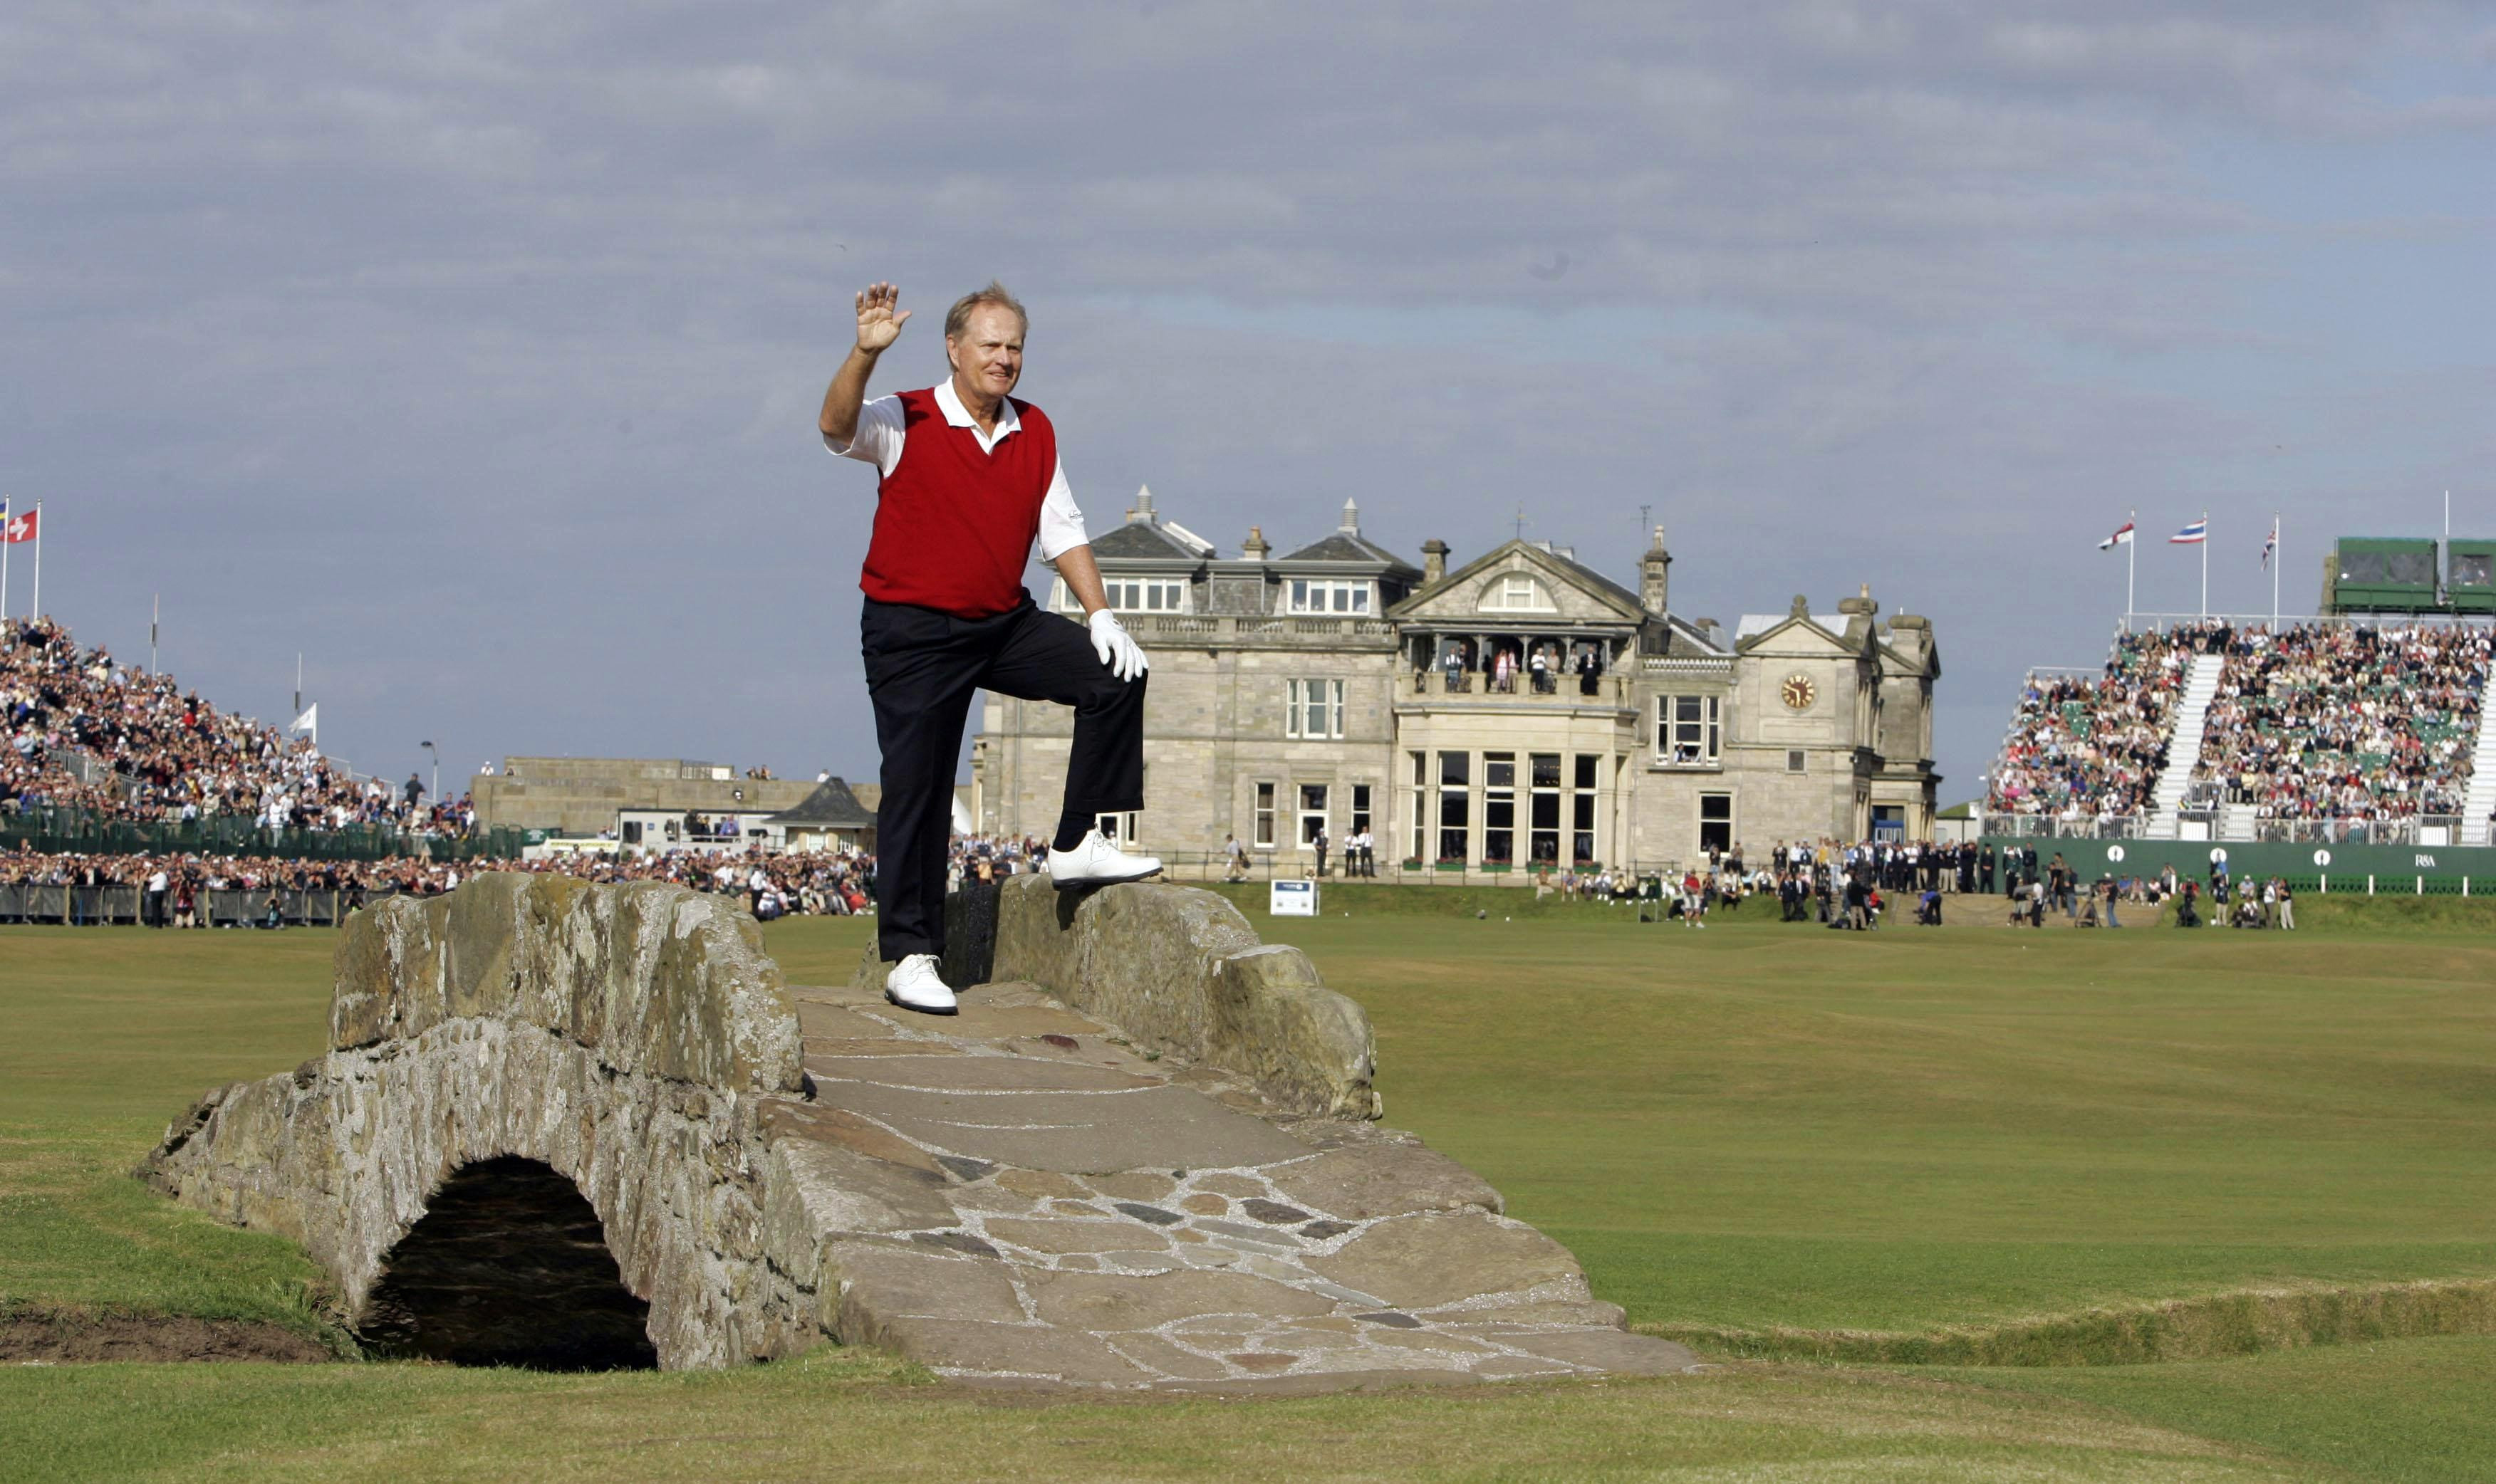 Jack Nicklaus waves to the crowds on the eighteenth hole during his final round at the British Open in 2005 at St. Andrews.